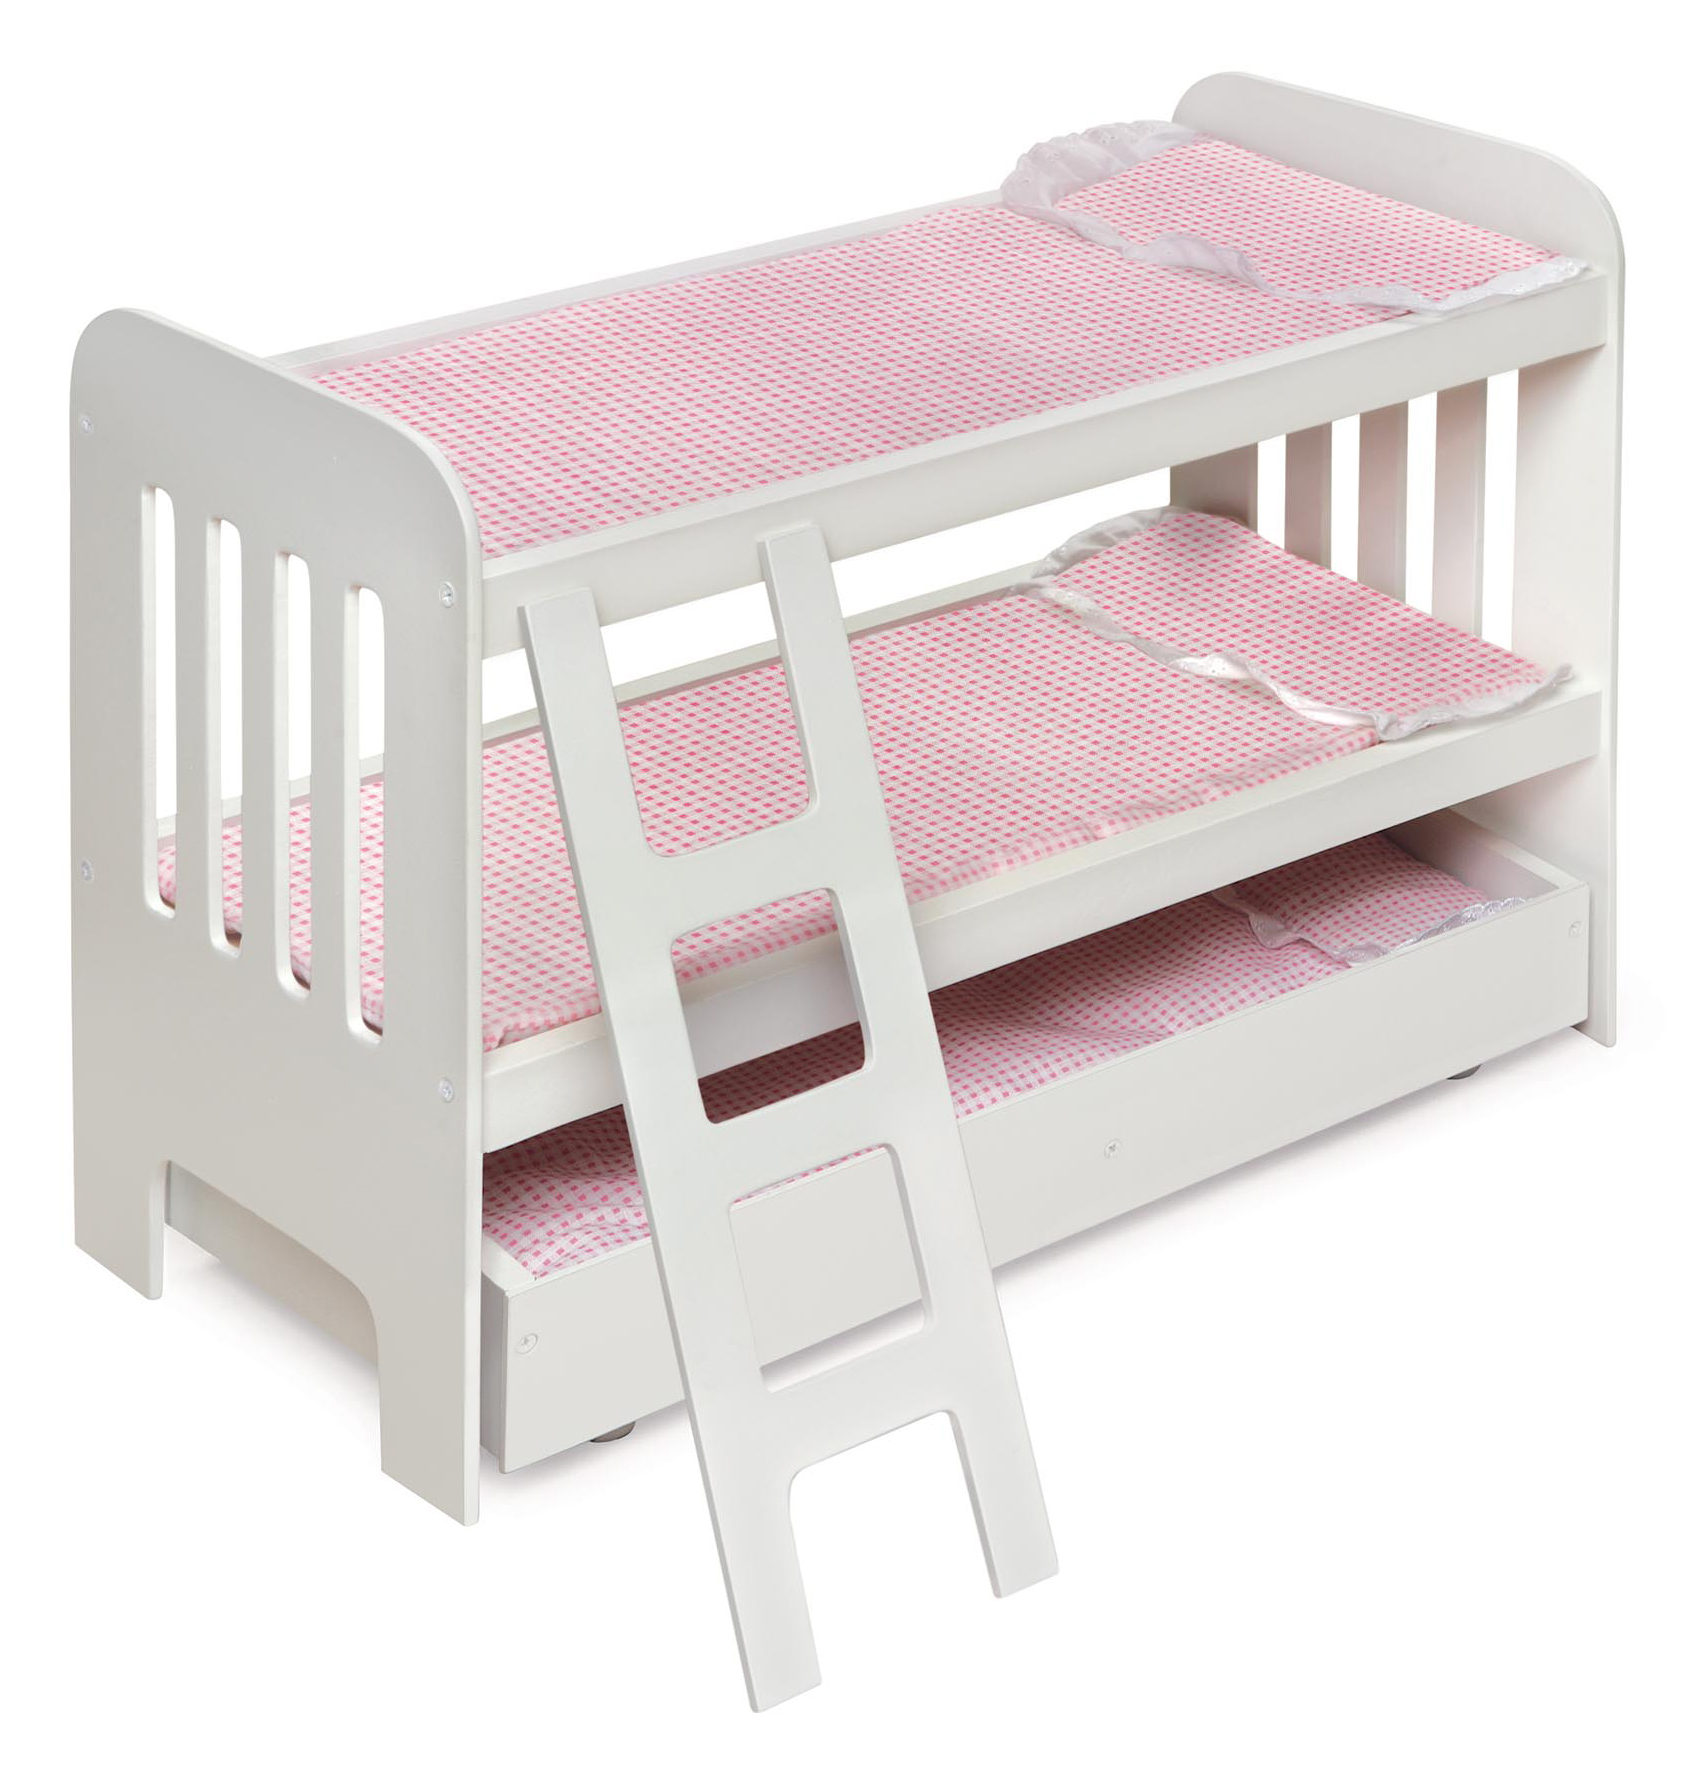 Badger Basket Trundle Doll Bunk Bed with Ladder White Pink Fits American Girl, My Life As... by Badger Basket